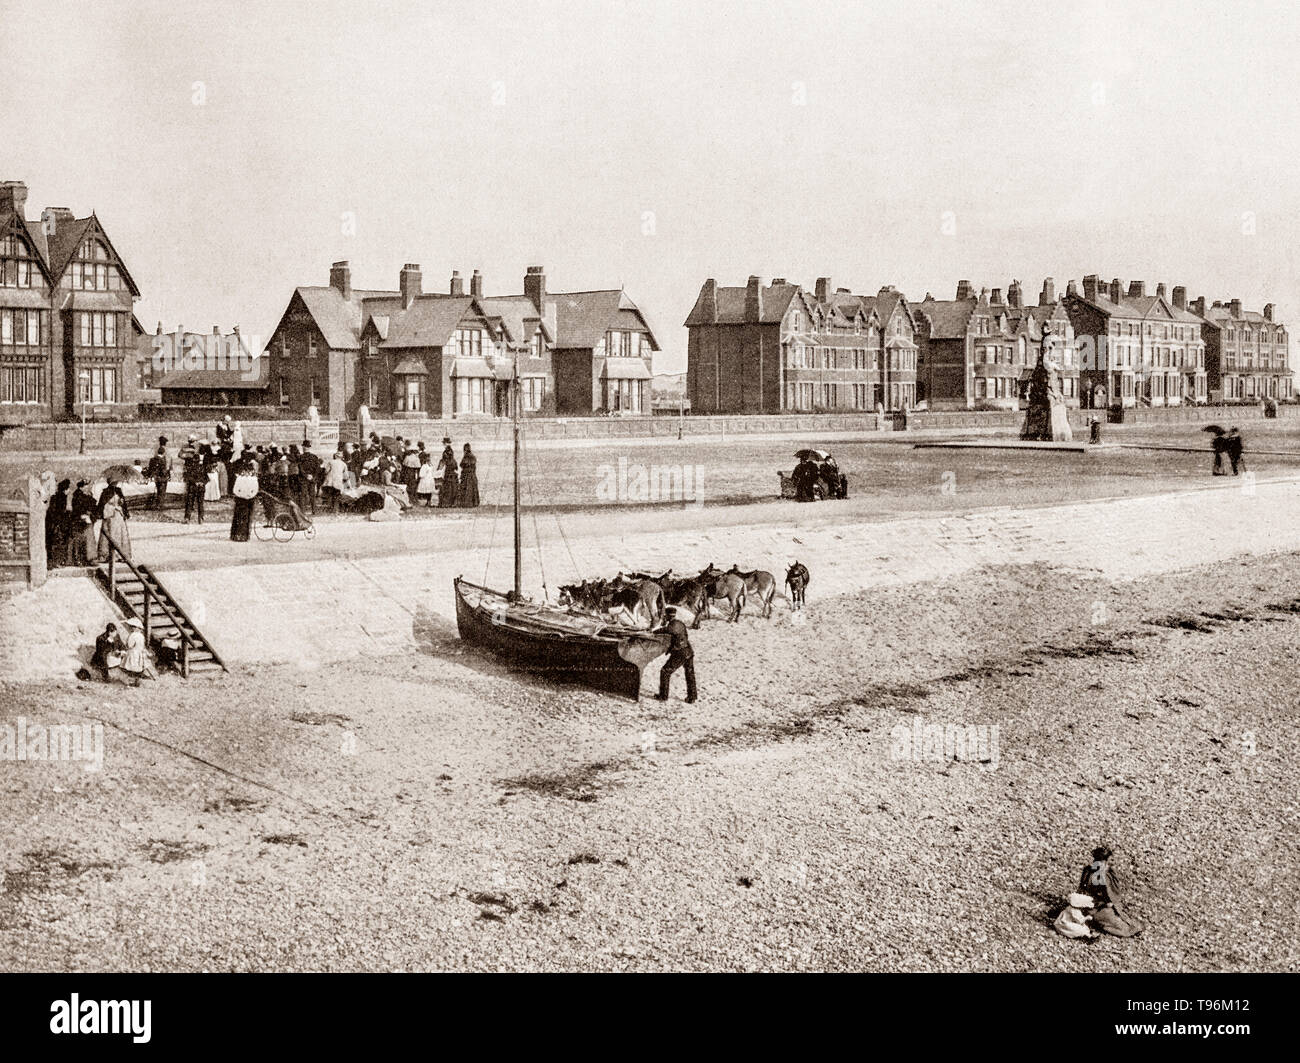 A late 19th Century view of a small sailing boat, donkeys and toursts on the beach at Lytham St Annes aka St Annes-On-Sea, a seaside resort on the Fylde coast of Lancashire, England, south of Blackpool on the Ribble Estuary.  On 14 October 1874 the St Anne's-on-the-Sea Land and Building Company Ltd was registered, mainly at the instigation of Elijah Hargreaves, a wealthy Lancashire mill owner from Rawtenstall to develop the area as a resort for people from Lytham and Southport. - Stock Image